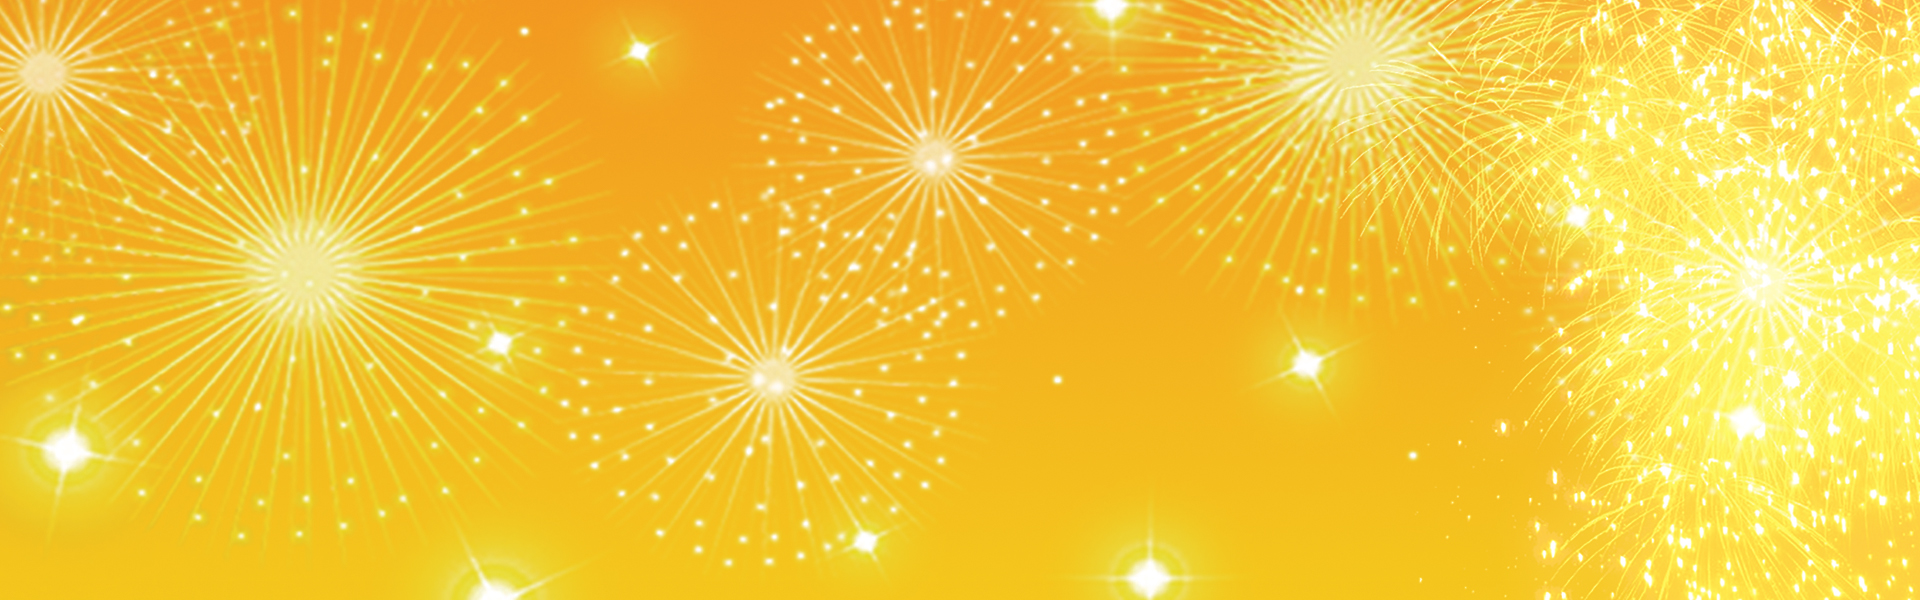 brilliant fireworks background  fireworks  yellow